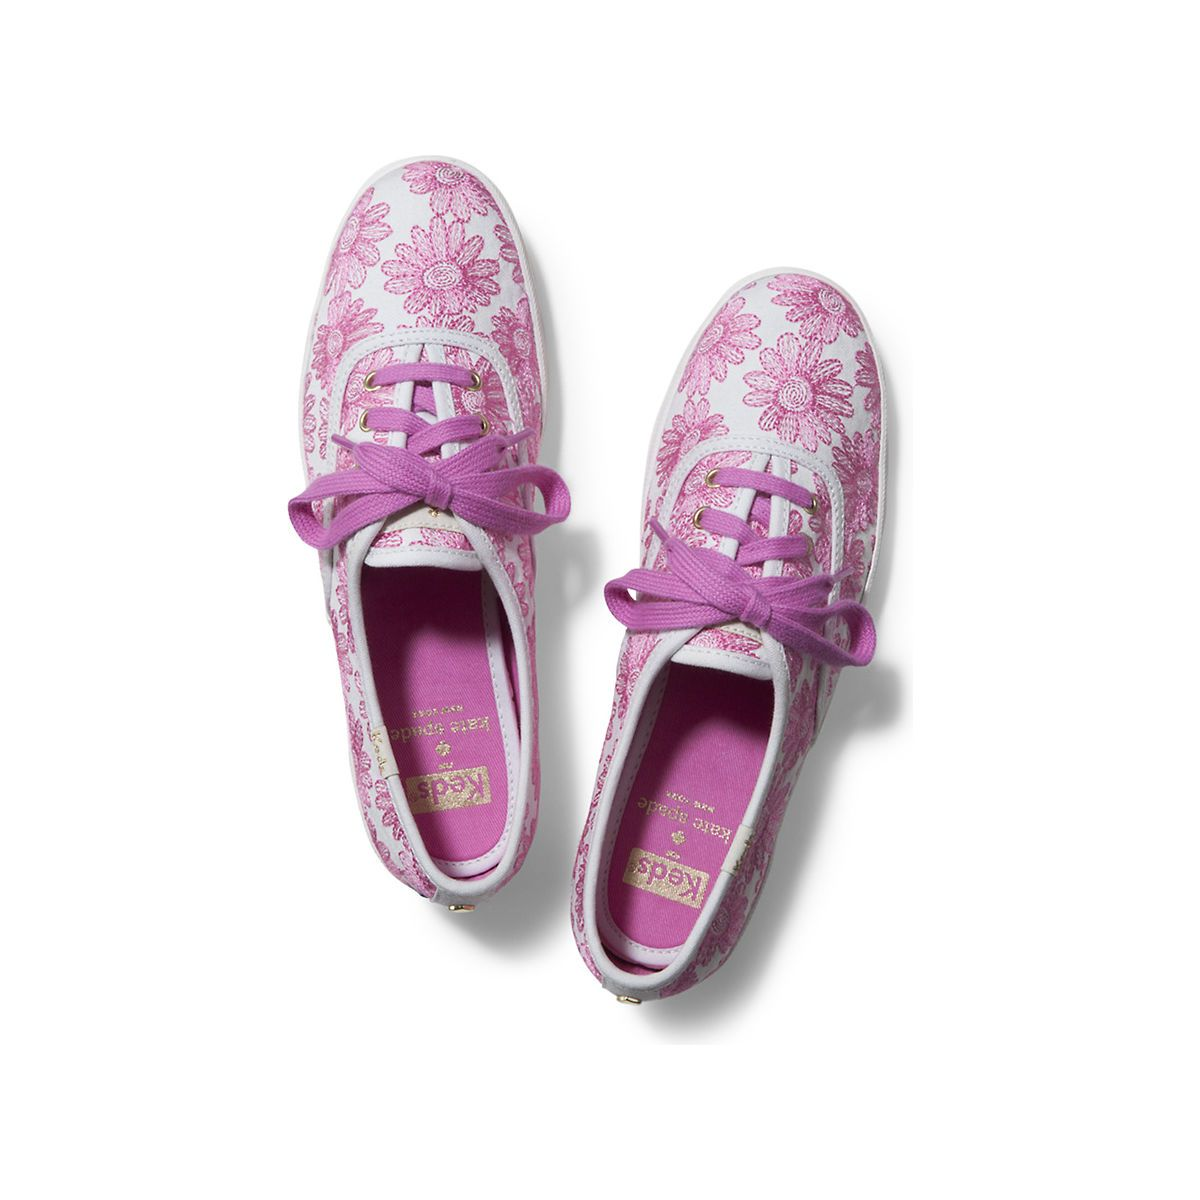 bfb3bacc529b Women KEDS X kate spade new york CHAMPION DAISY EMBROIDERY Pink Daisy